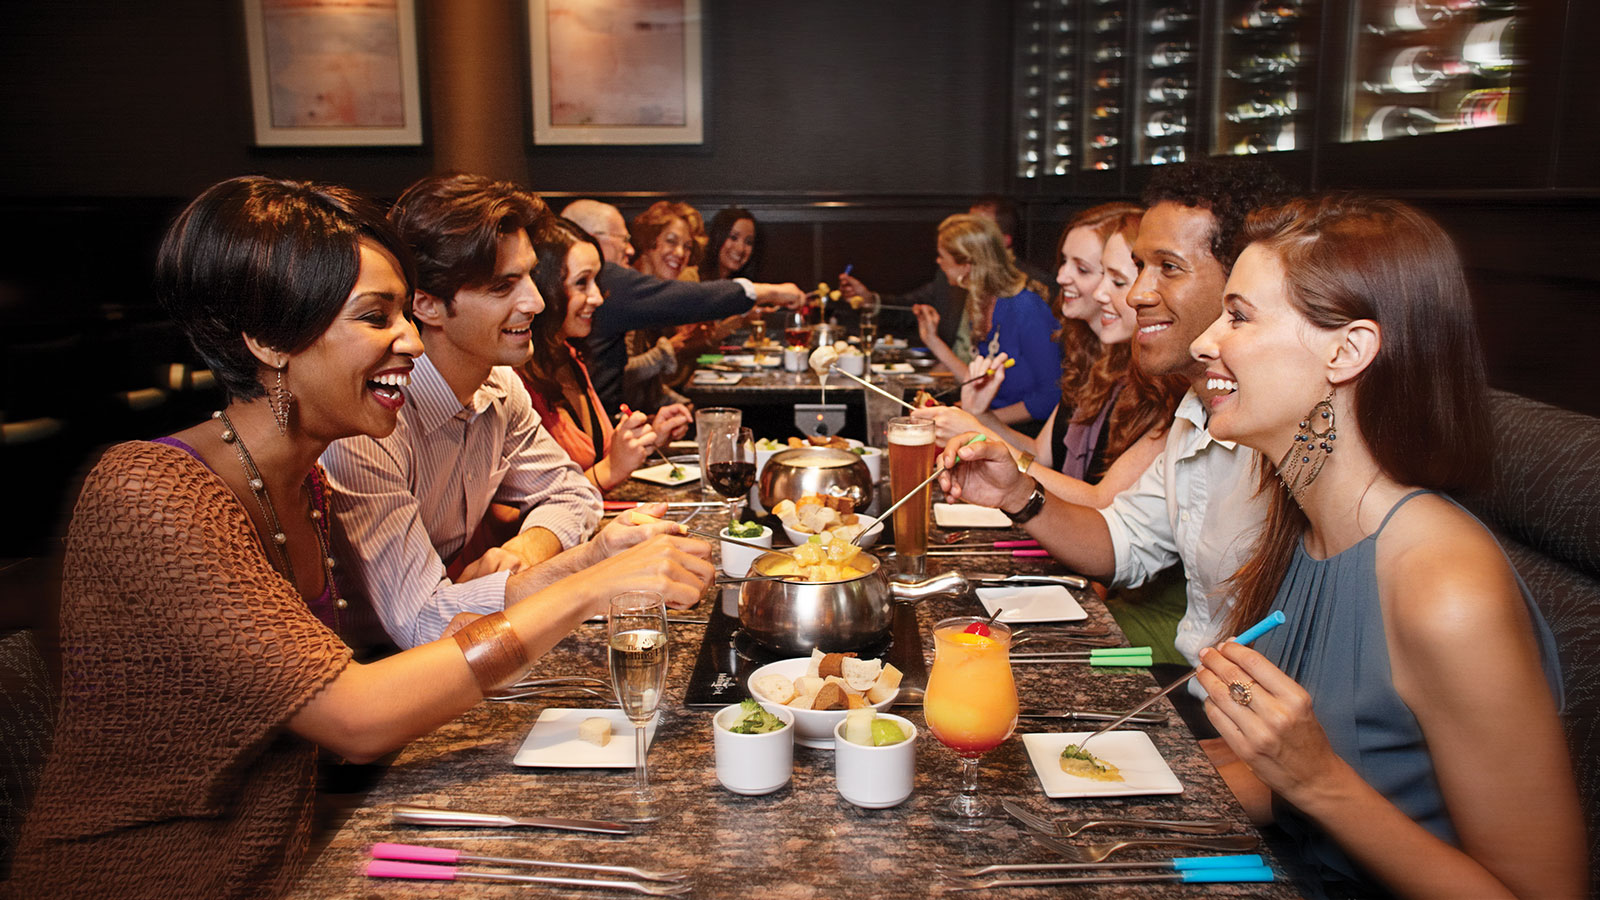 the melting pot The melting pot is 43-year-old proven brand that has recently been named the #1 casual dining restaurant in america by consumers the melting pot is no ordinary franchise the foundation is rooted in exceptional food, beverage and service, without the op.